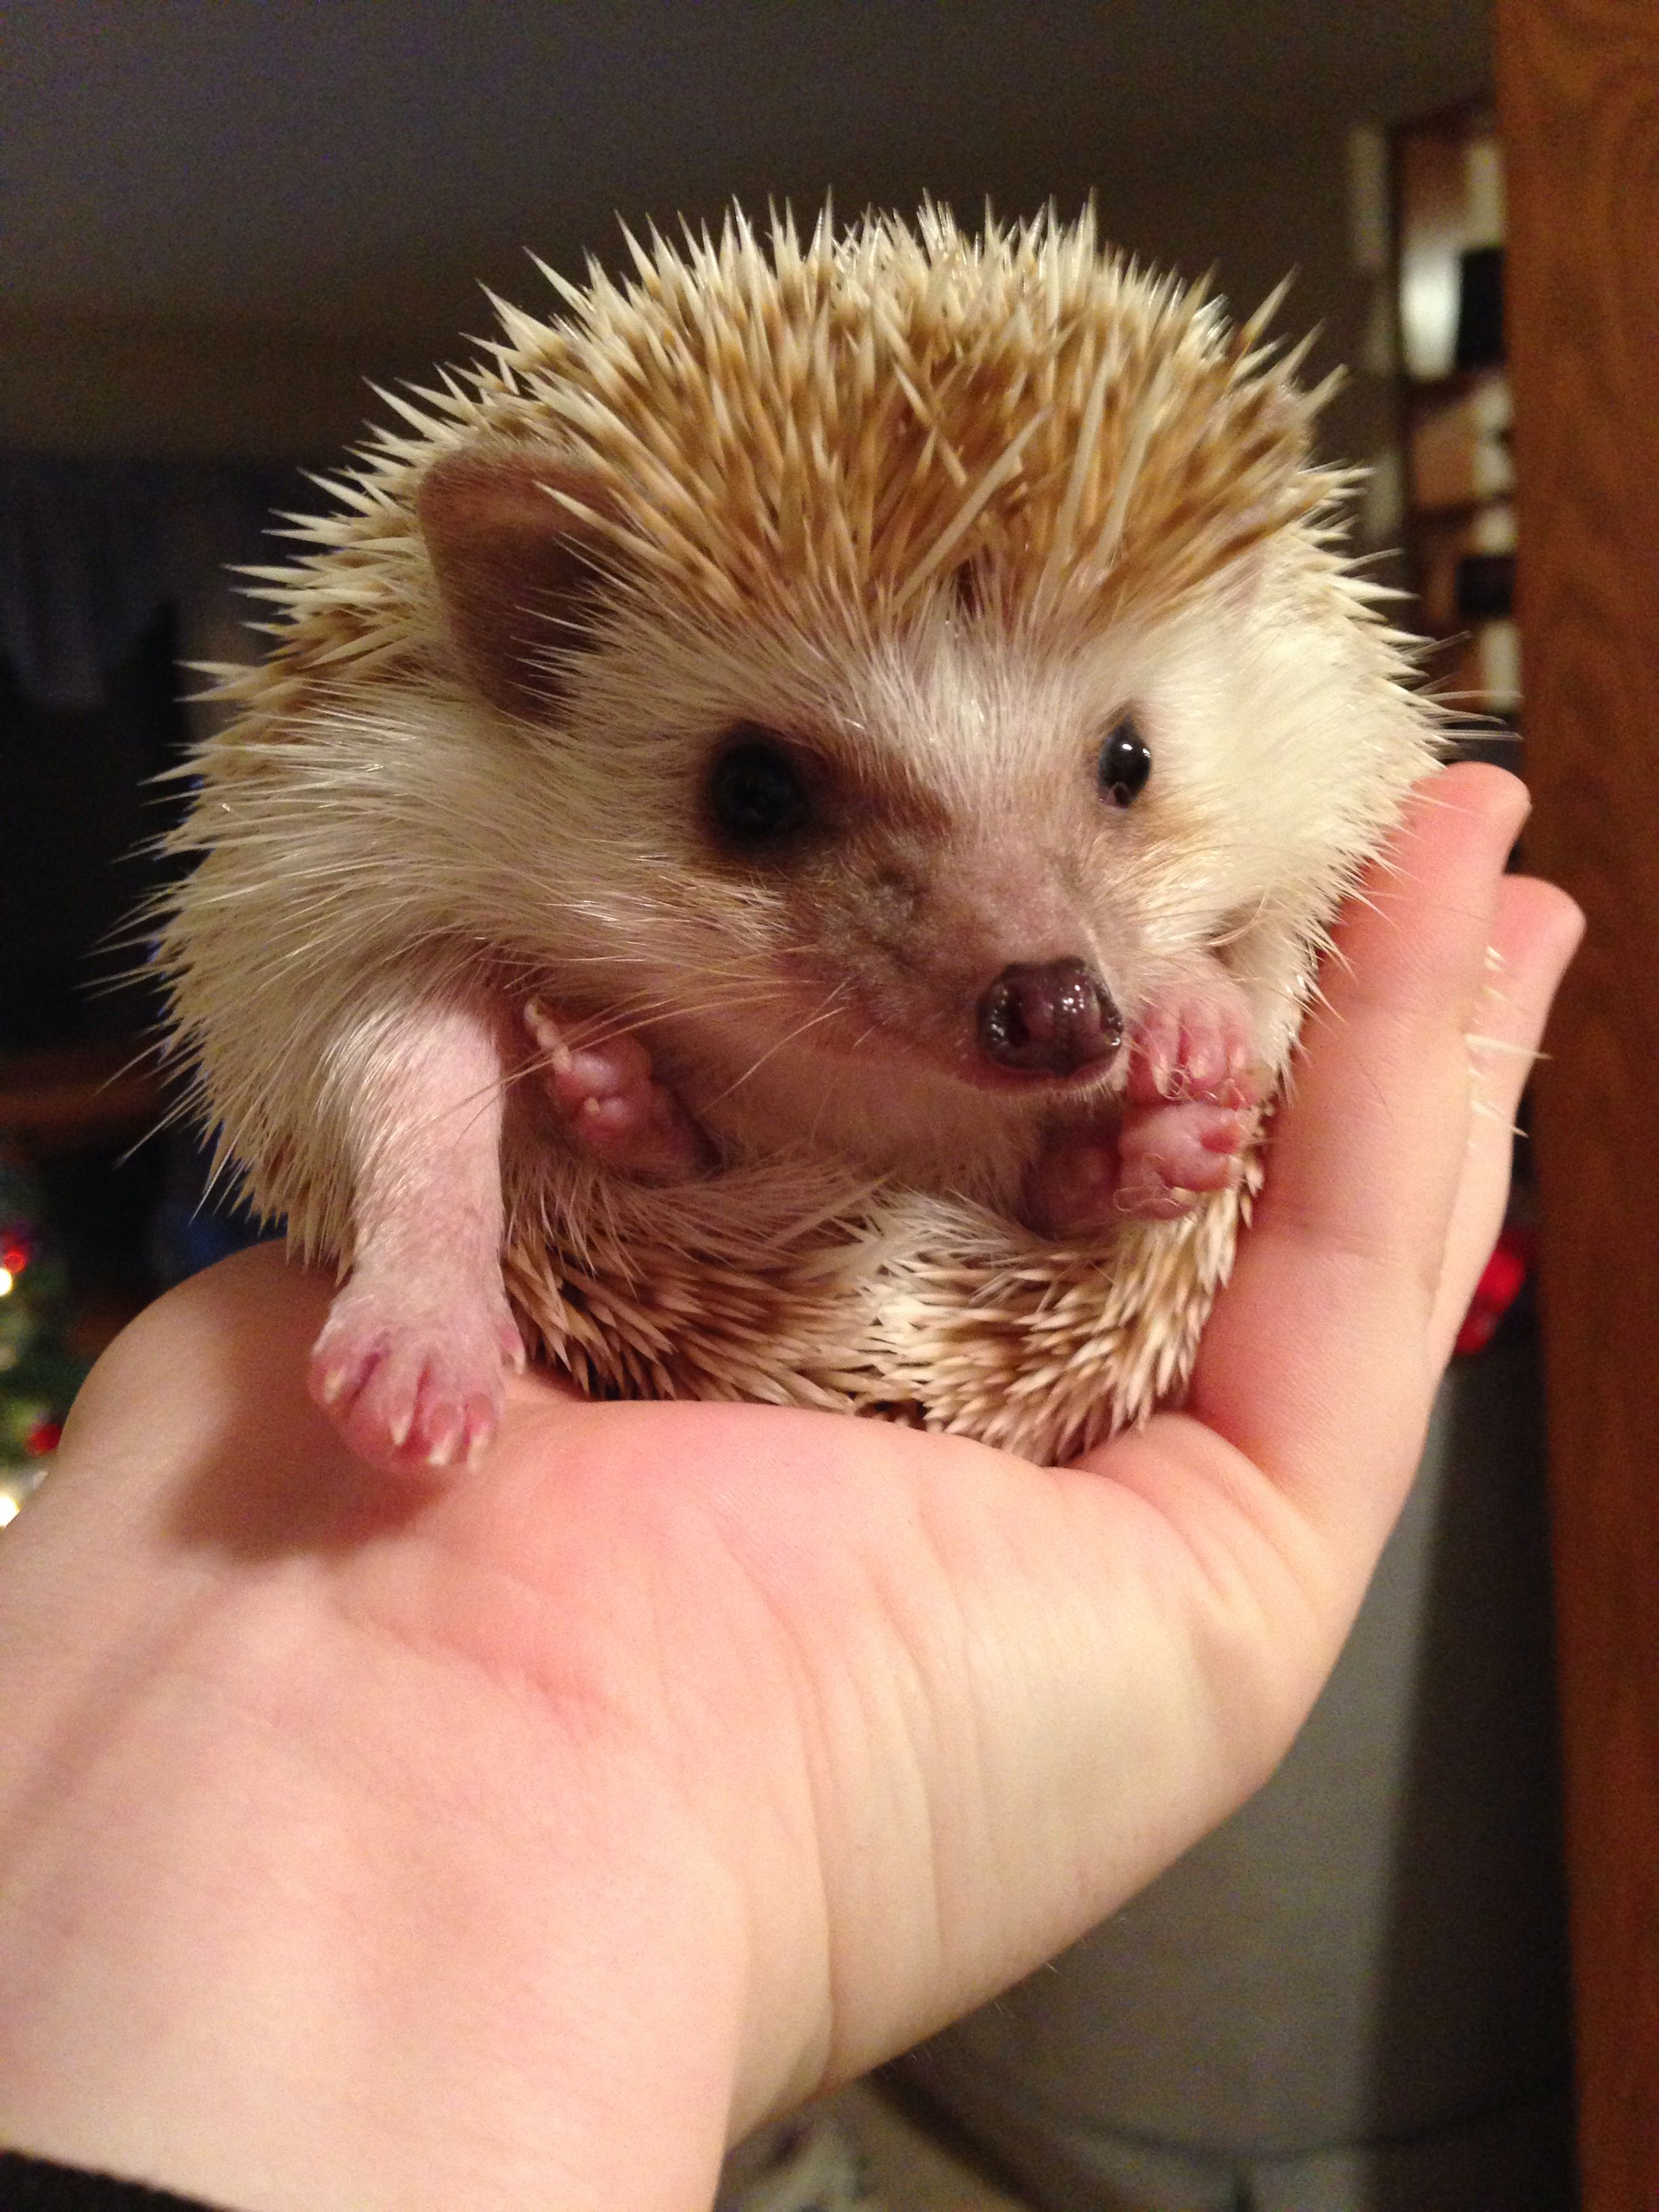 Basil The Hedgehog Cute Hedgehog Cute Animals Hedgehog